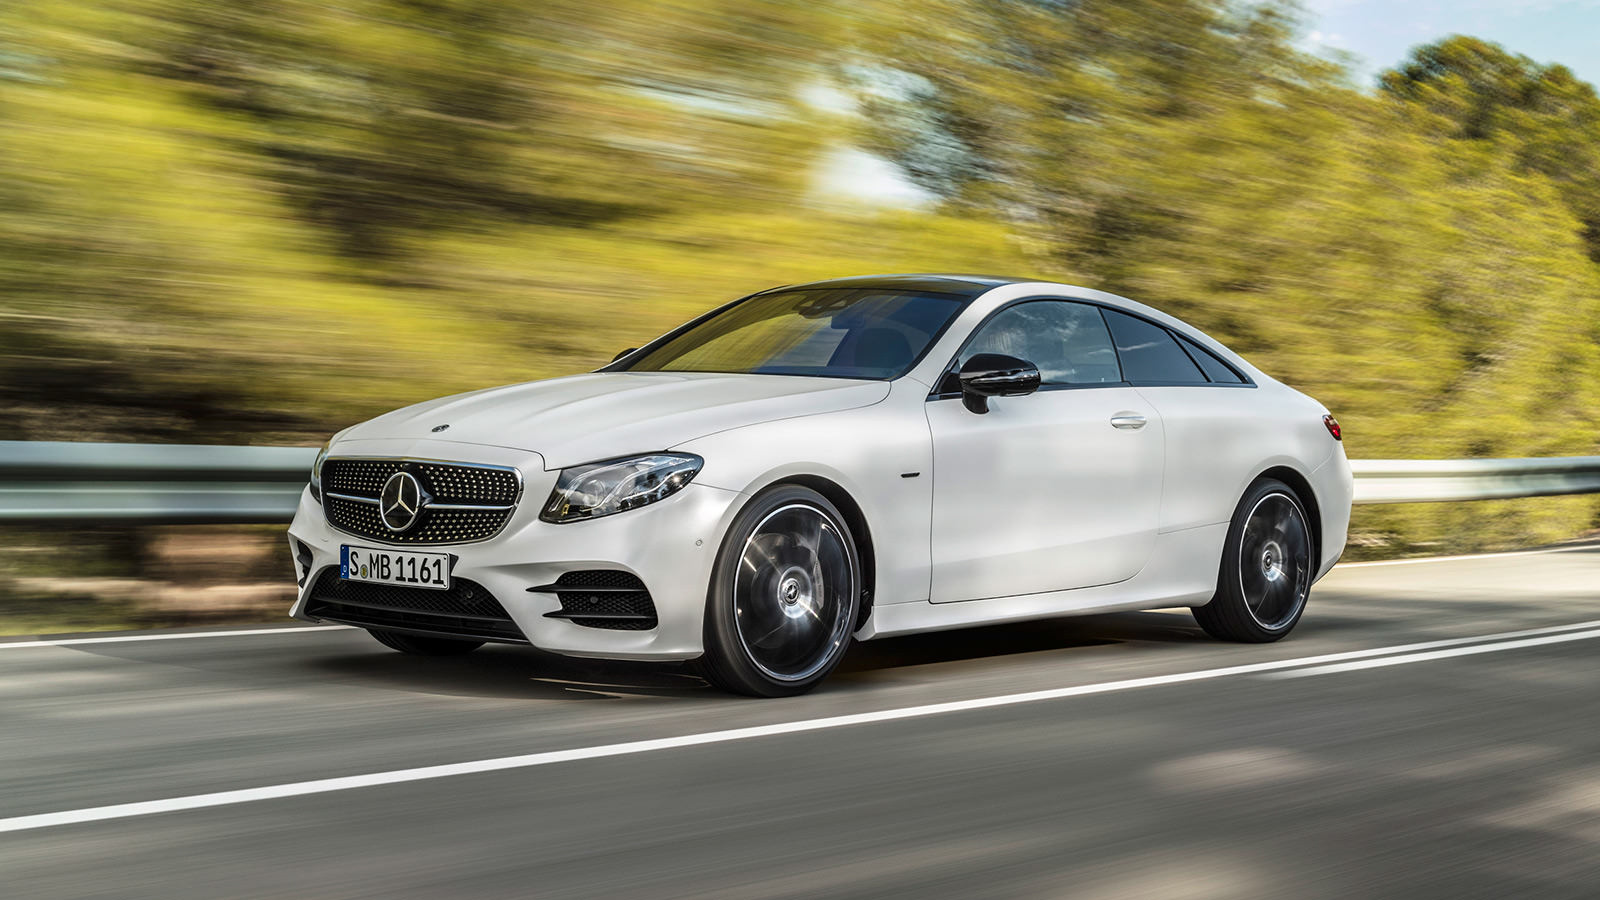 2018 mercedes benz e class coupe imboldn for Mercedes benz e learning